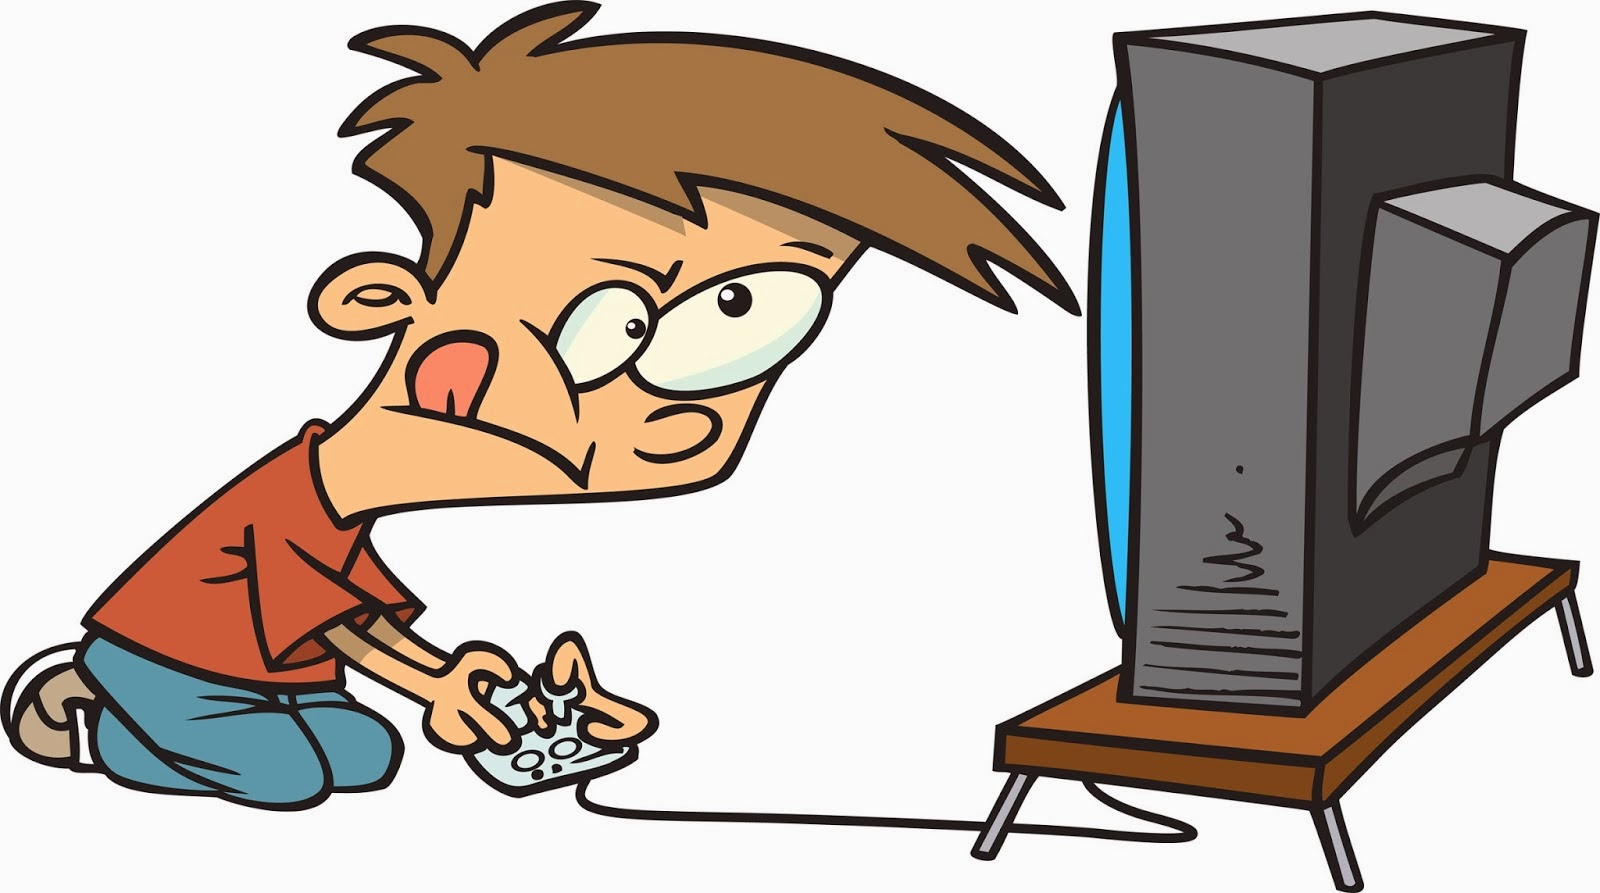 Play video games clipart